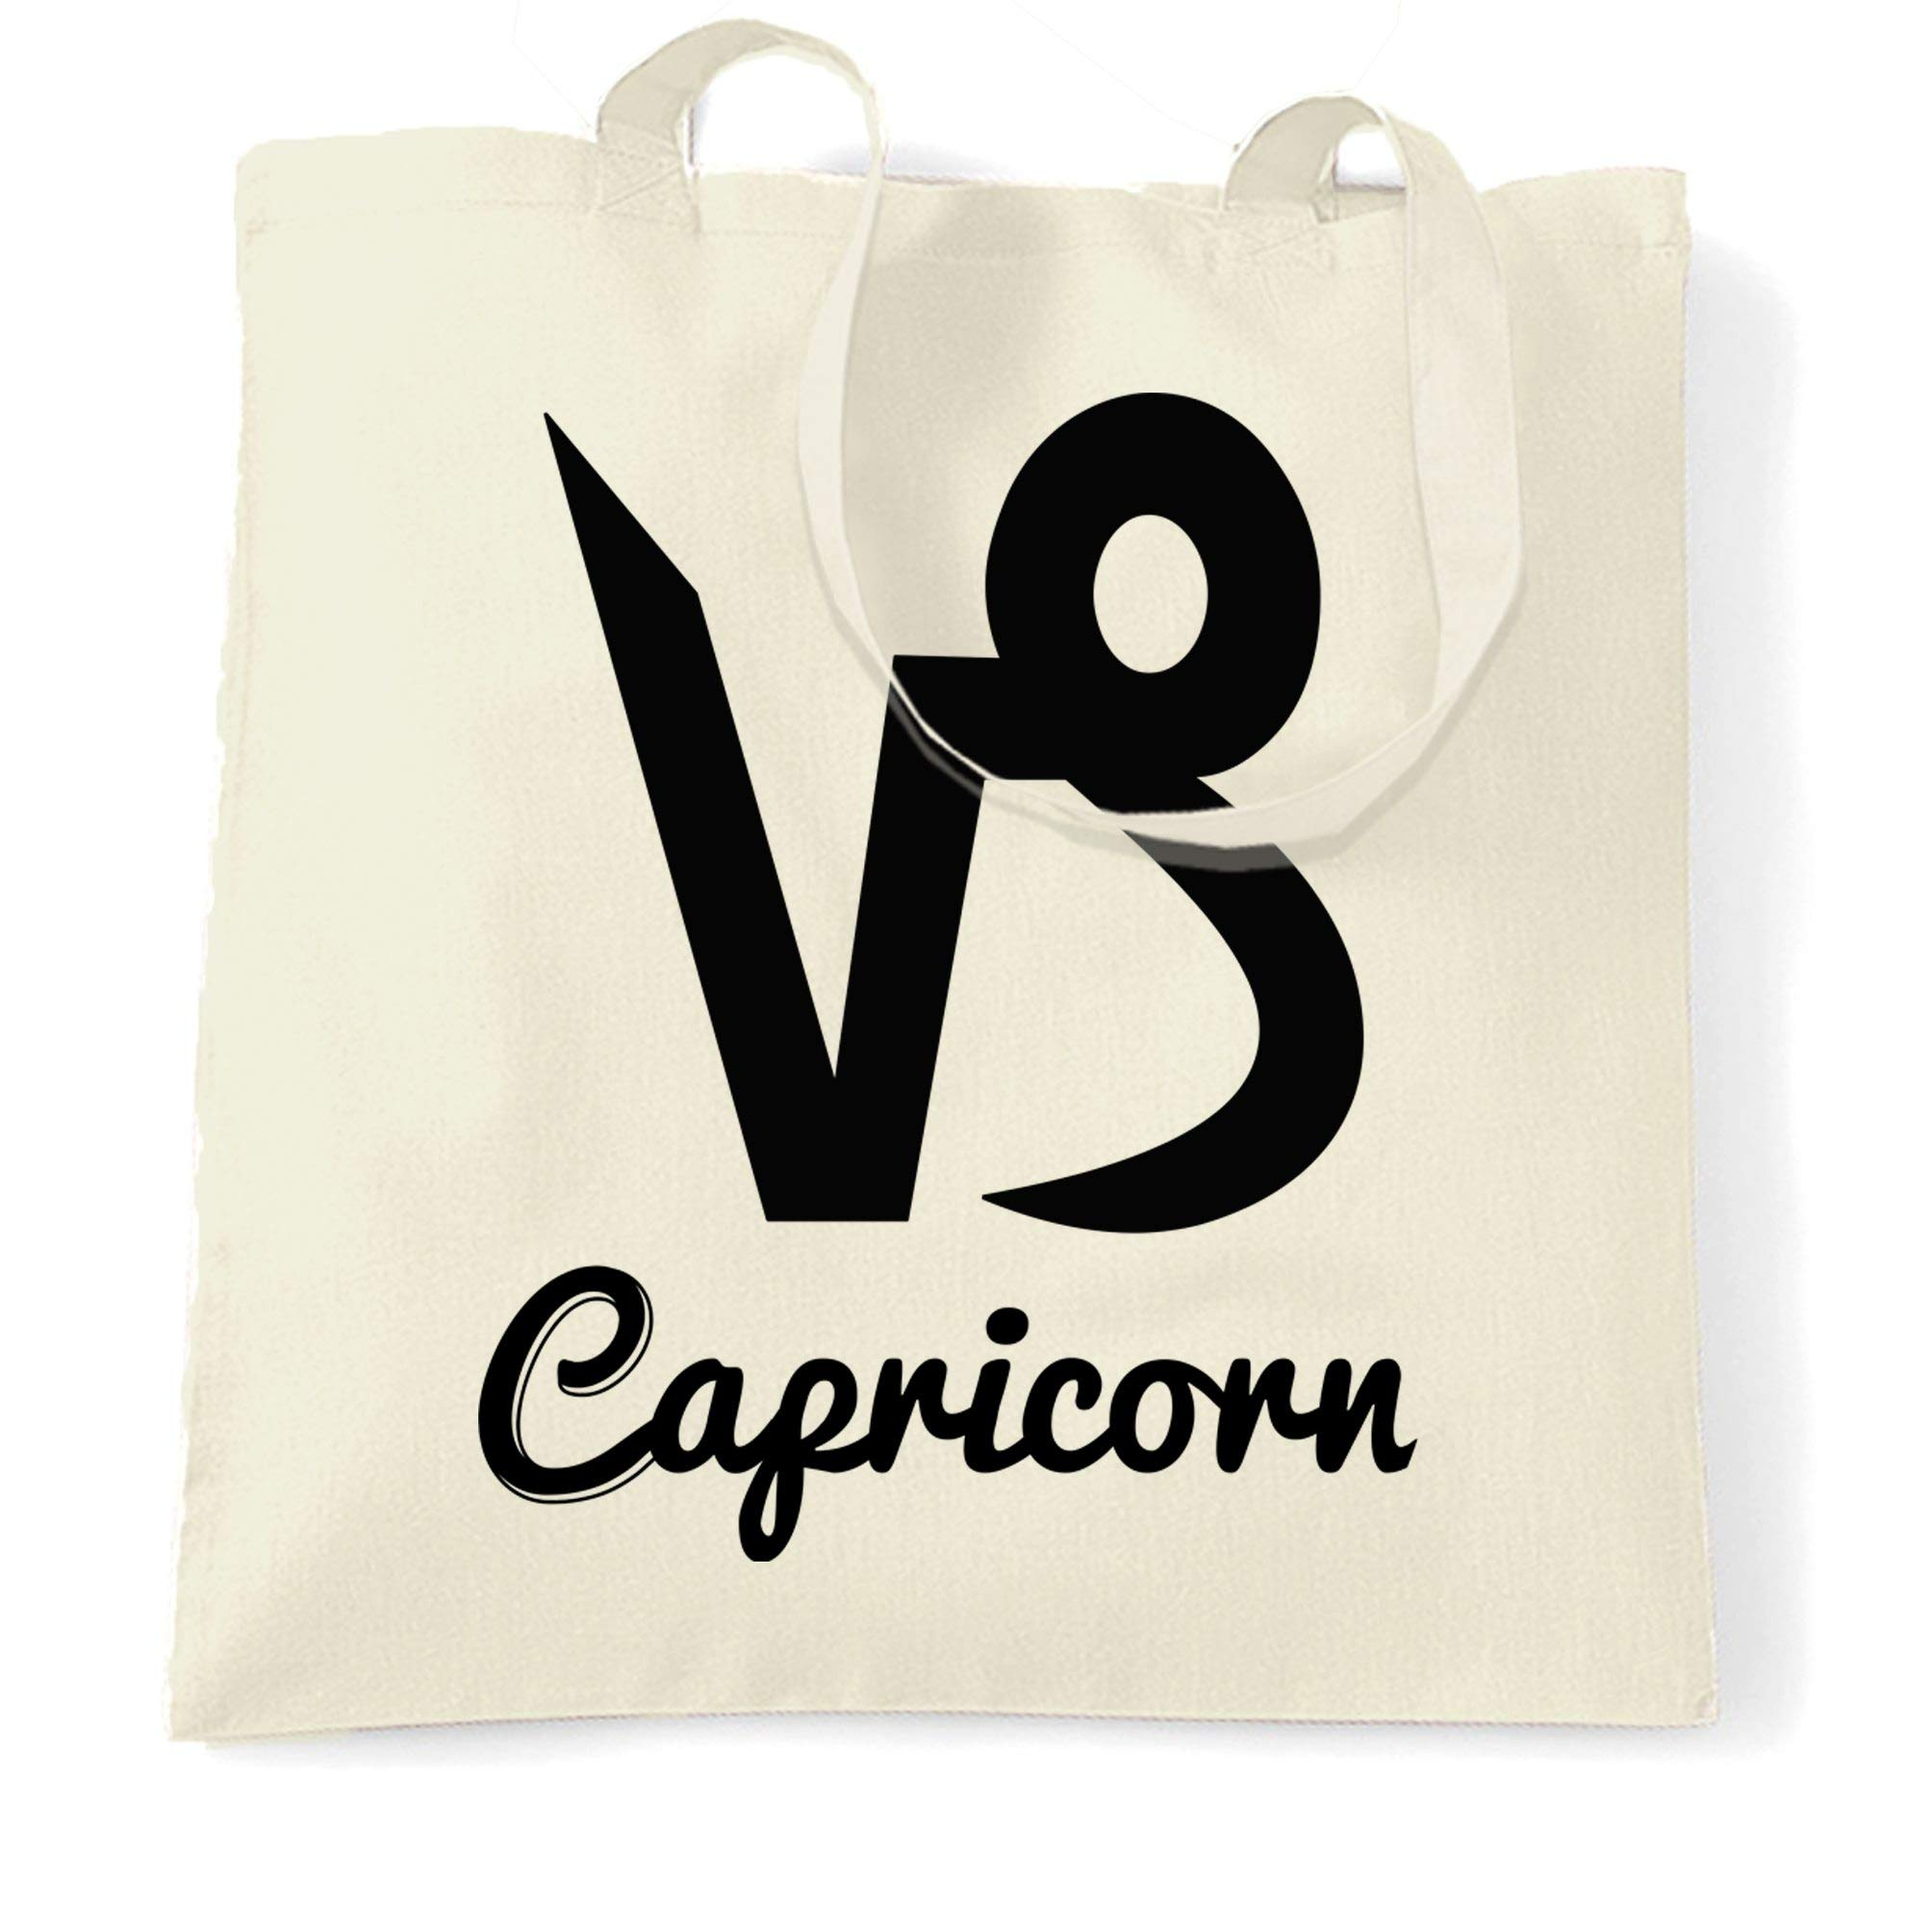 Details about  /Horoscope Tote Bag Capricorn Zodiac Star Sign Birthday Fortune Telling Cute